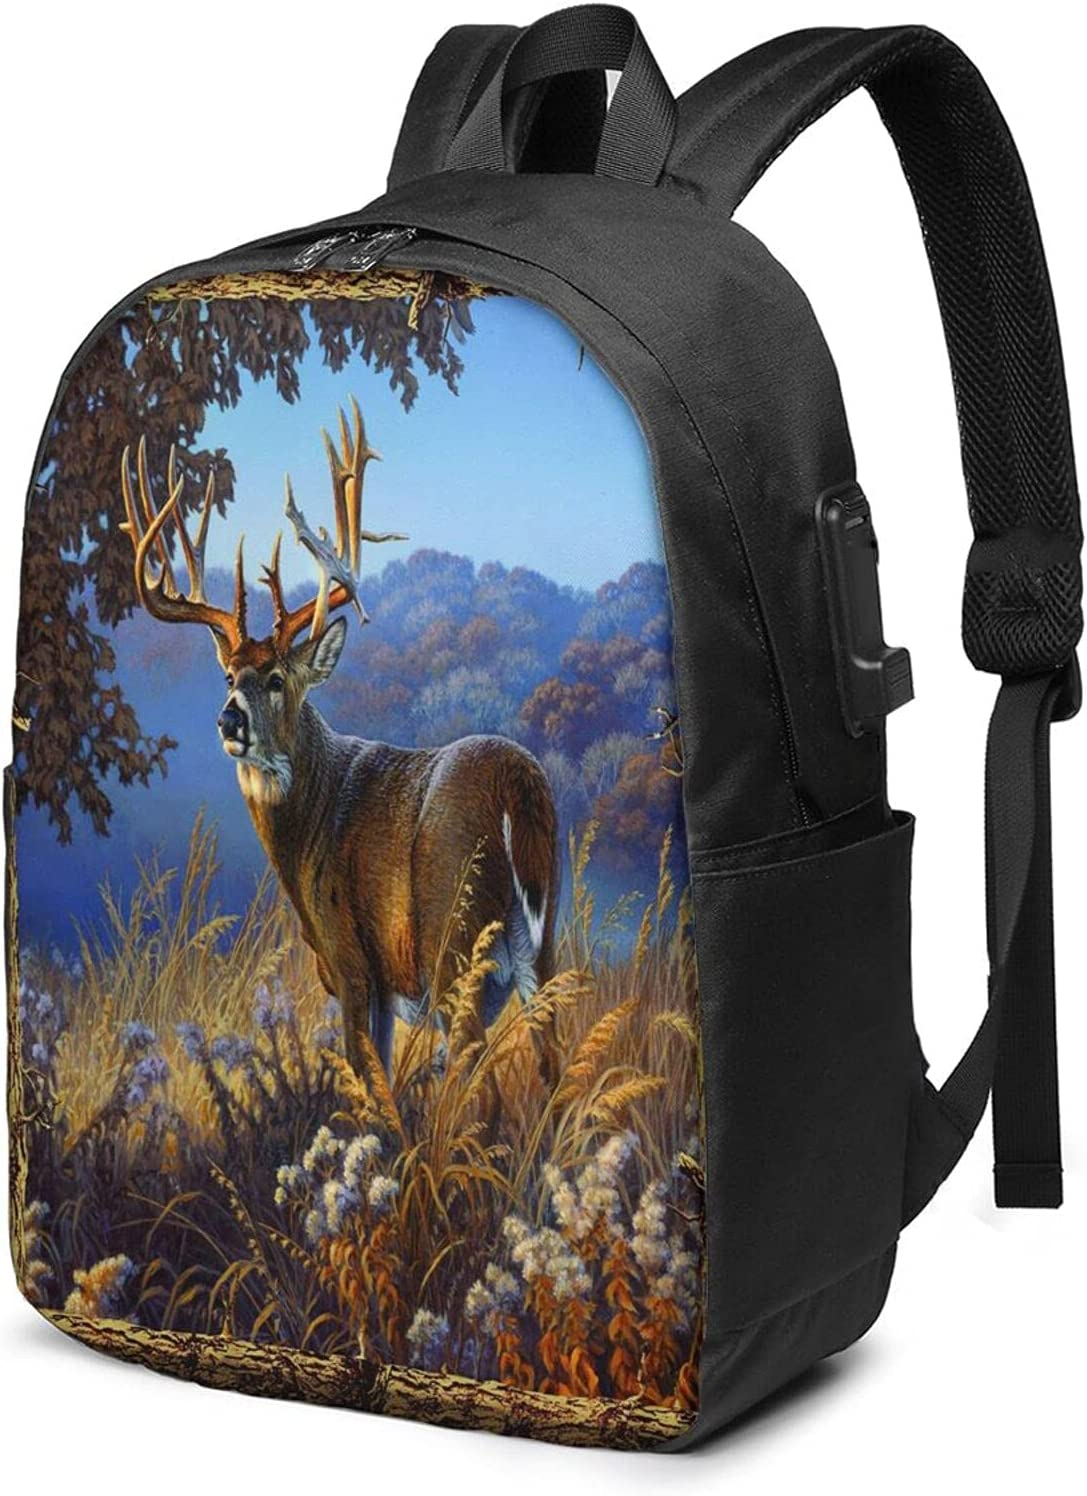 Selling New York Mall Deer Hunting Laptop Backpack For Daypack Usb Chargi with Boys